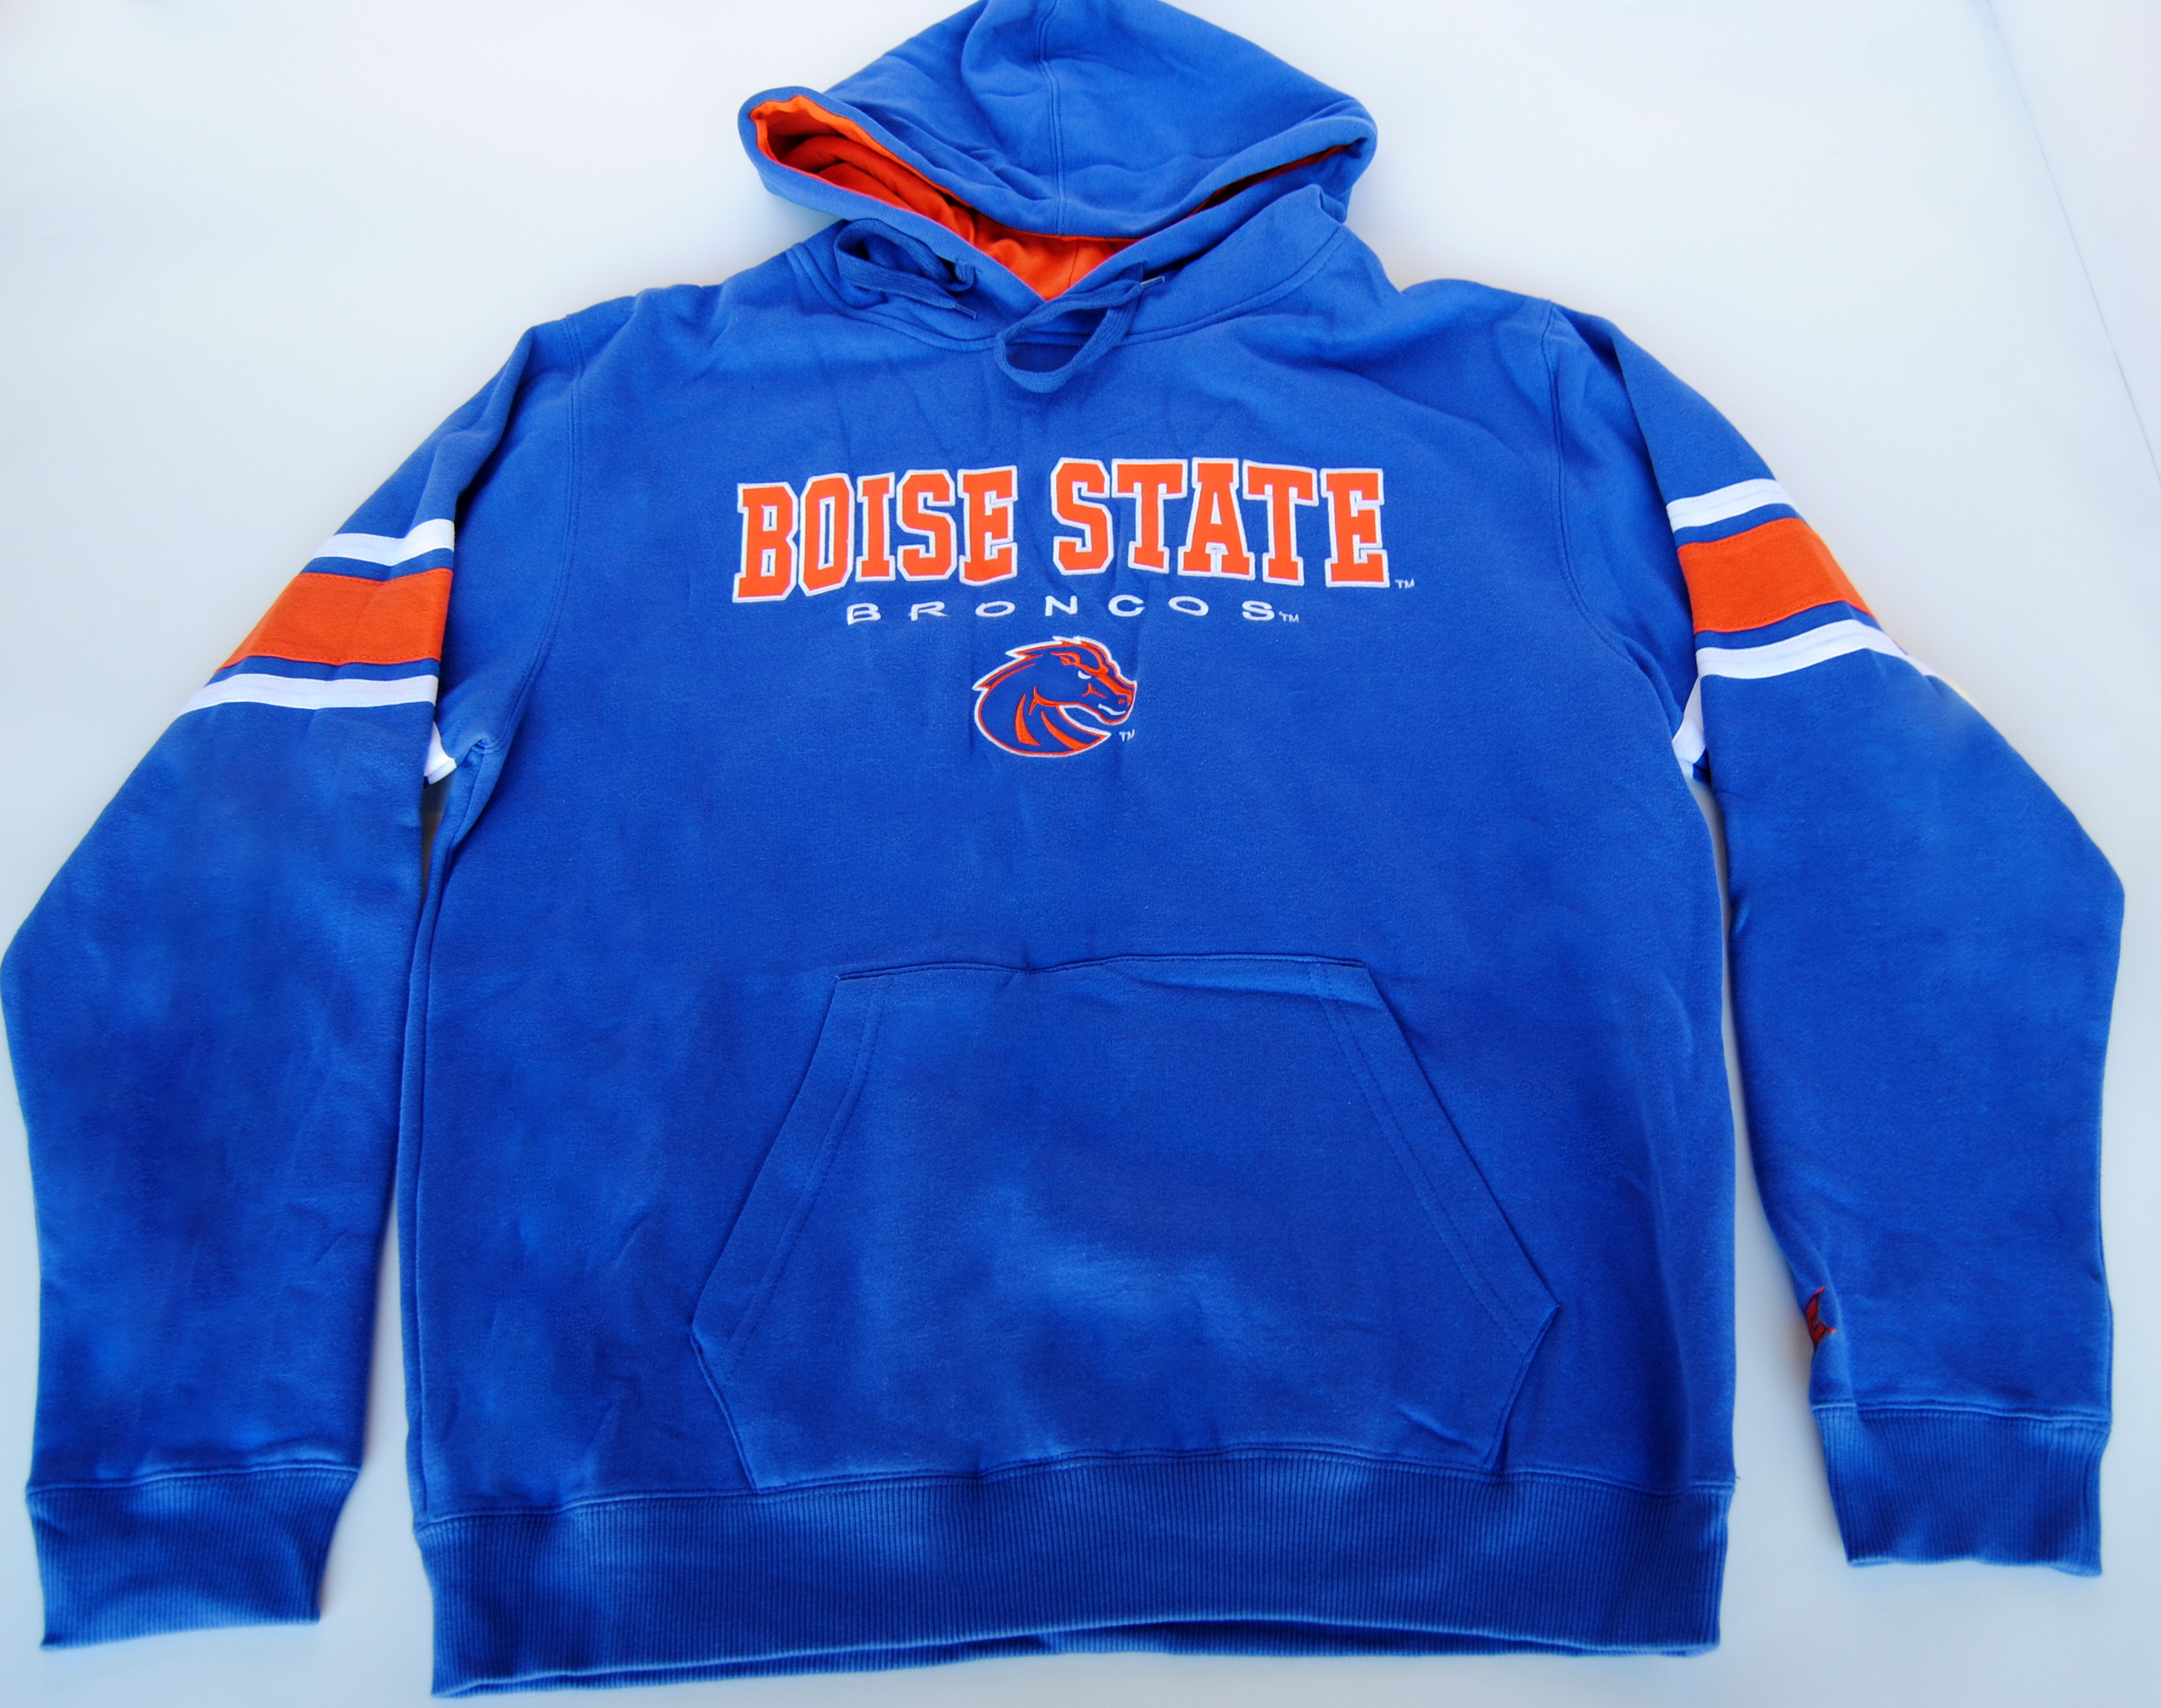 Colosseum Athletics Boise State Broncos Colosseum Athletics Blue Hooded Sweatshirt (L) at Sears.com